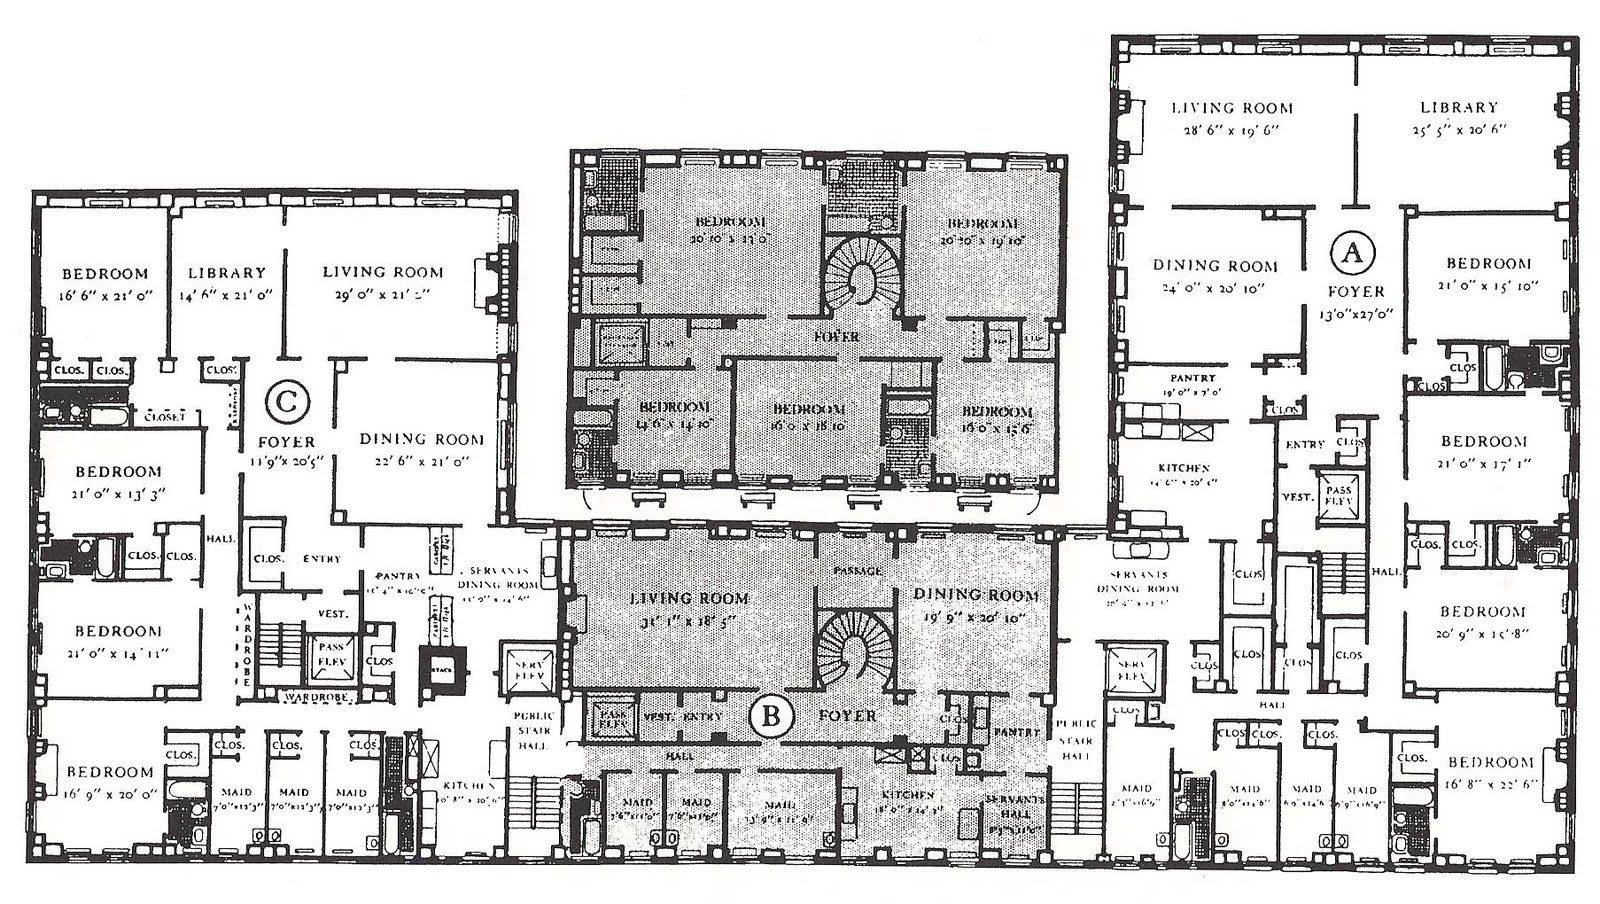 A Typical Floor Plan Of One Sutton Place South Manhattan Image From The New York Apartment Houses Of Rosario C Floor Plans Apartment Floor Plan Sutton Place